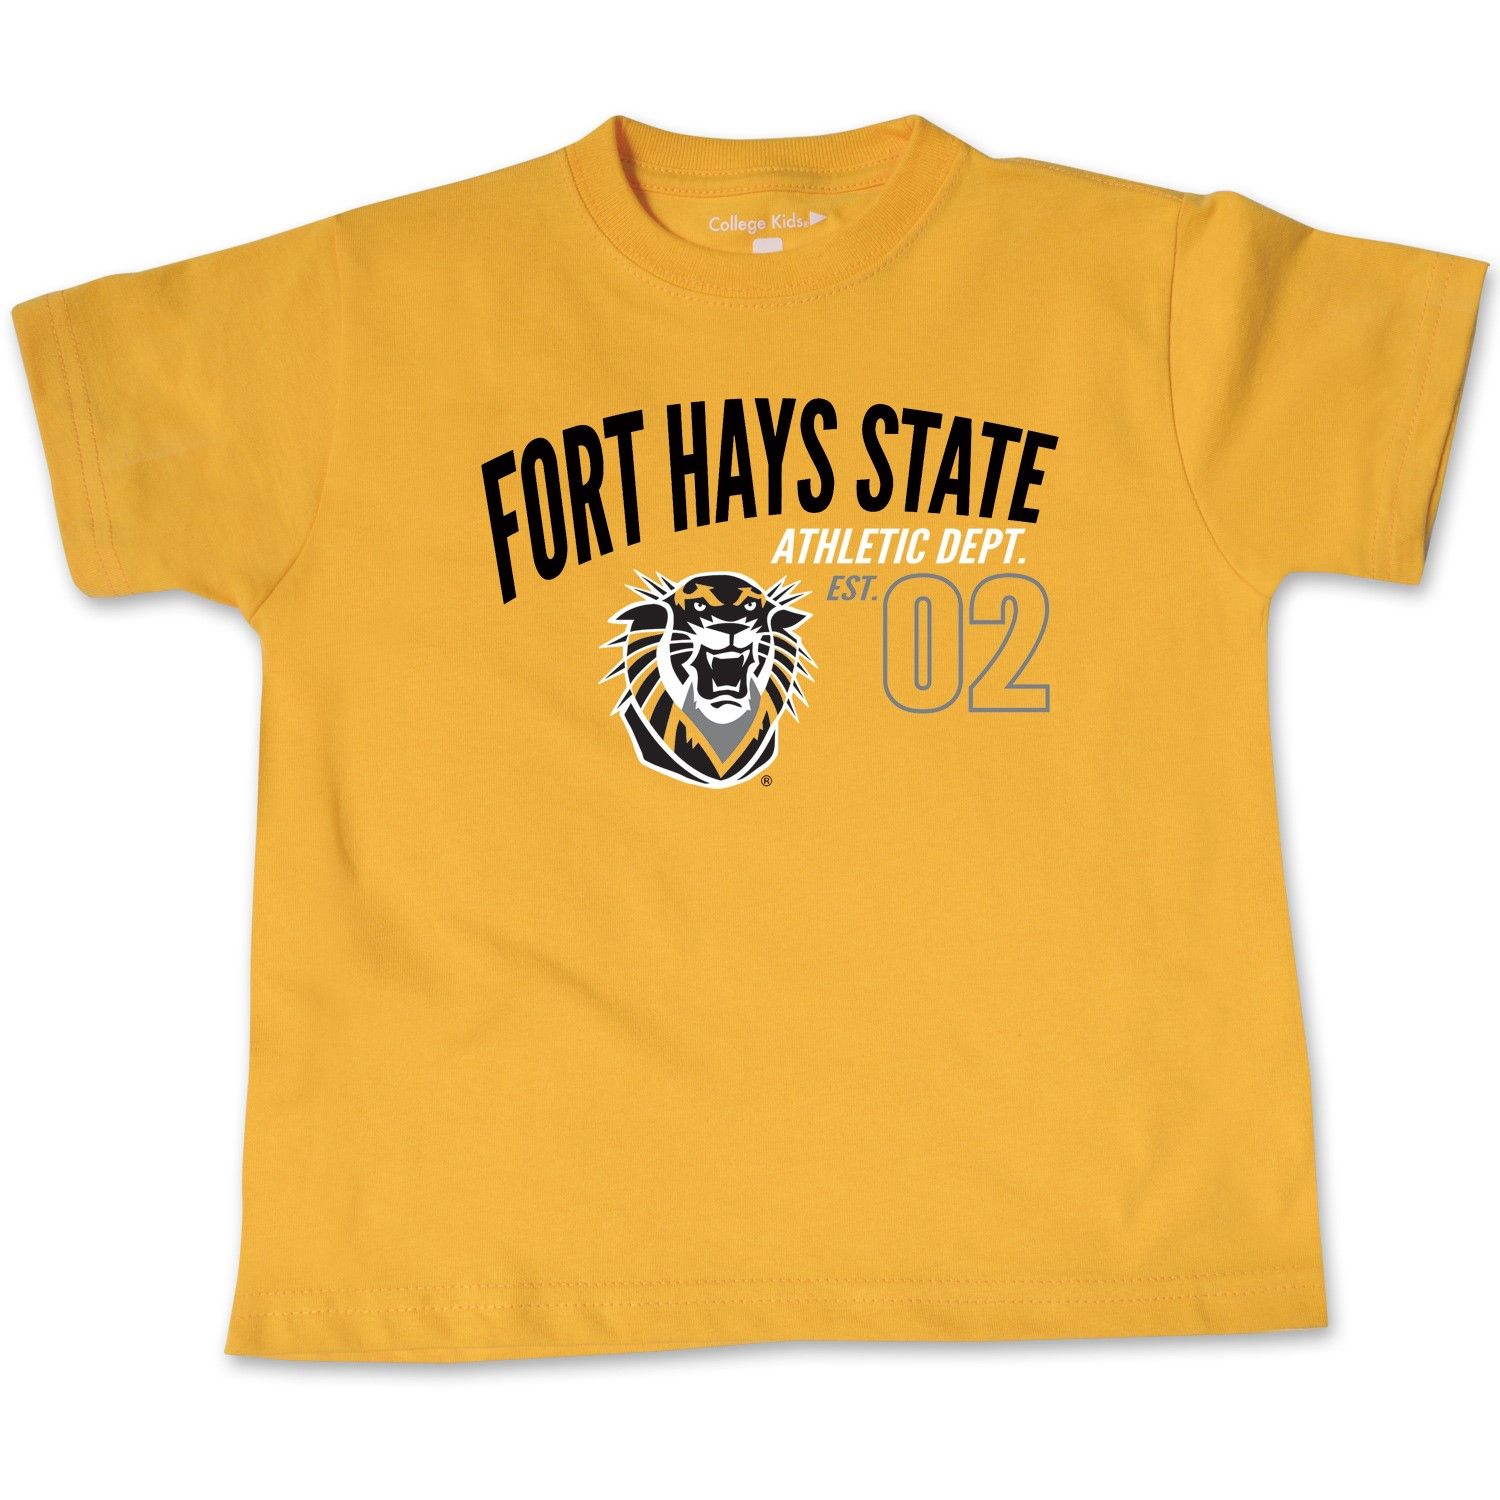 Image for the Toddler Short Sleeve Tee, Fort Hays State Athletic Dept. Est. 02, Athletic Gold, College Kids product